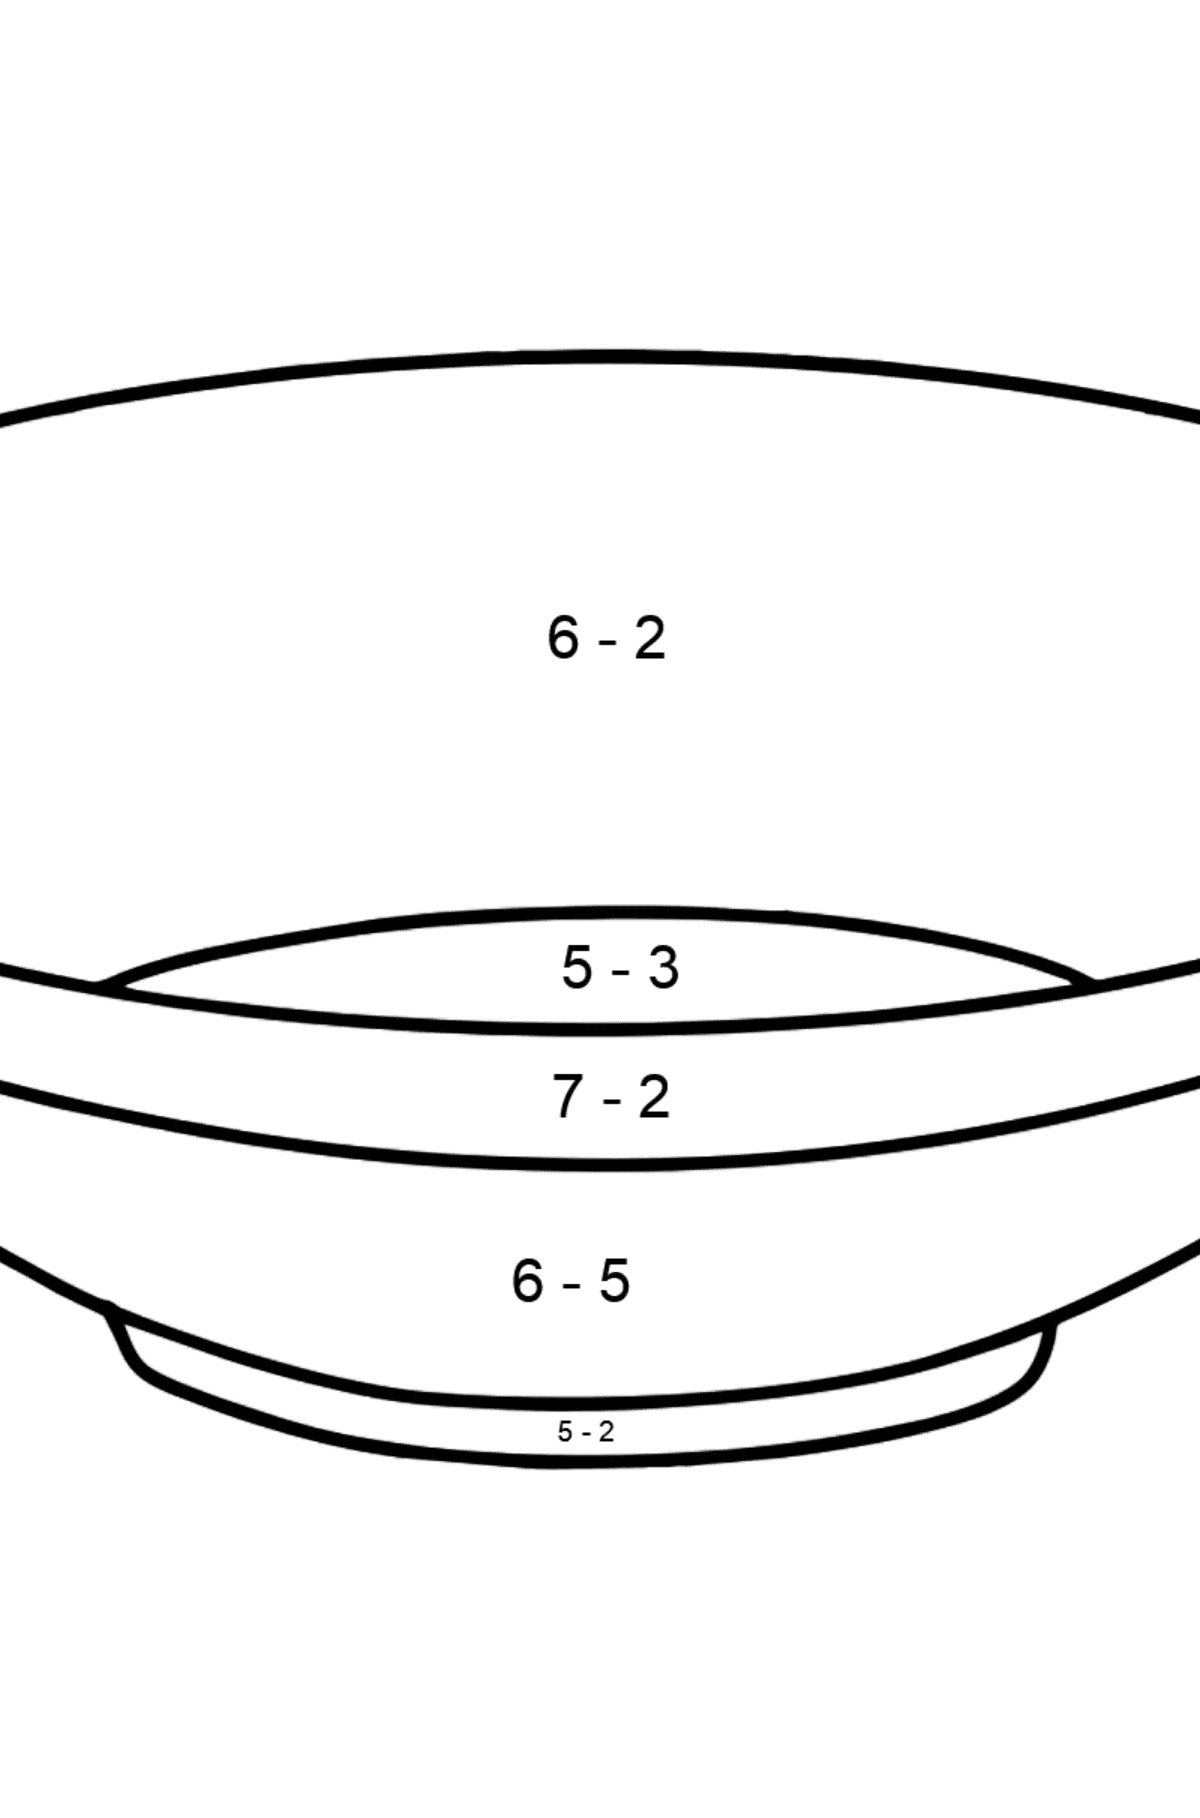 Plate coloring page - Math Coloring - Subtraction for Kids